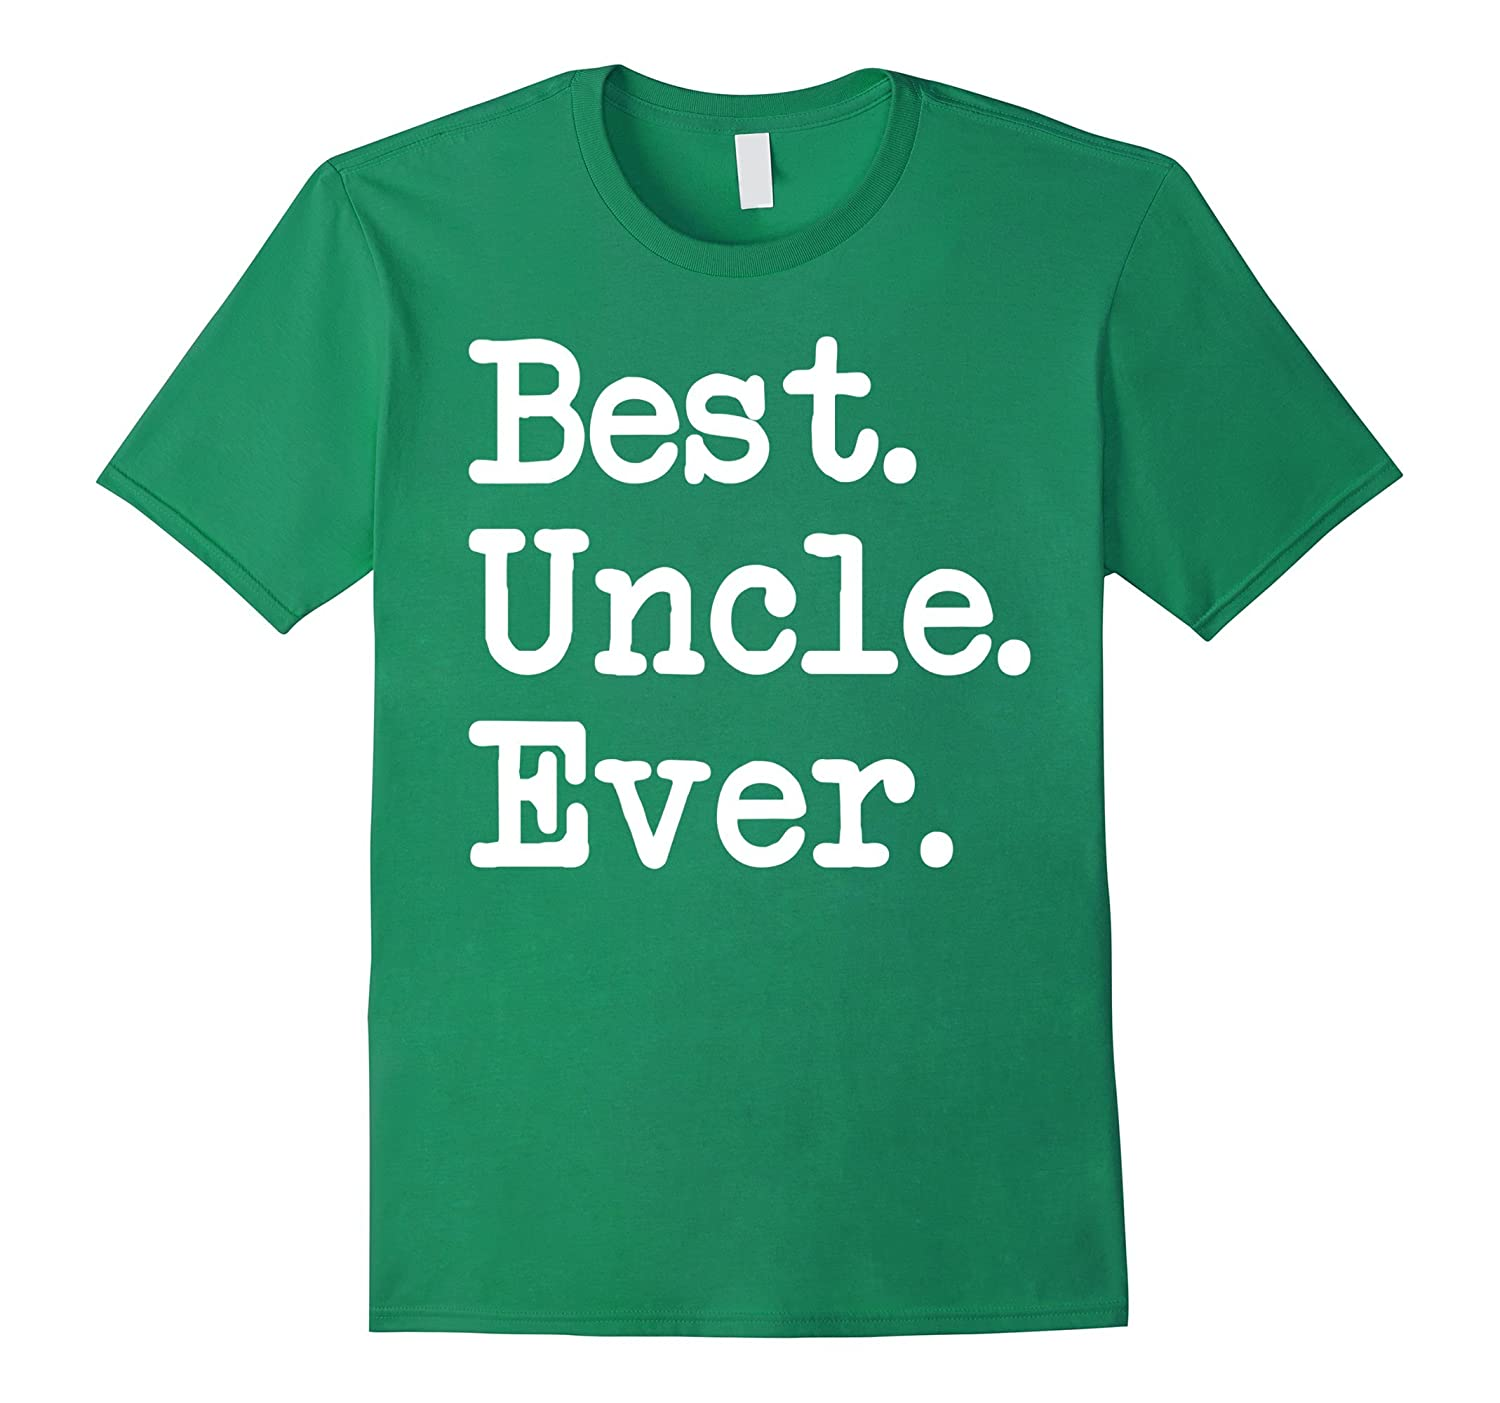 Best. Uncle. Ever. T Shirt Great Gift For Favorite Uncle ...